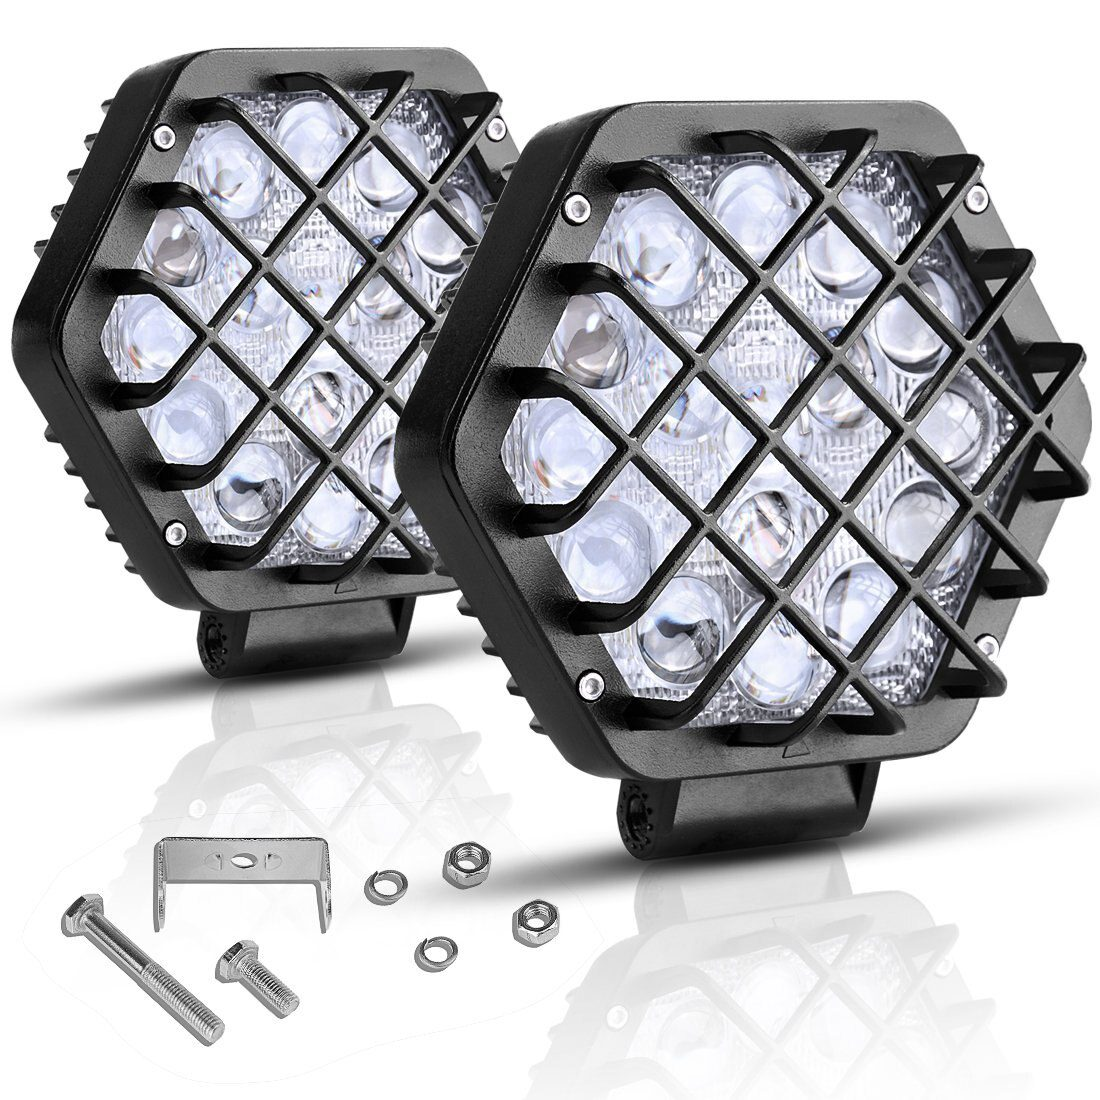 27W 42W Led Work Driving Light Spot Beam with Protective Cover Net for 4x4 Offroad Car Truck ATV SUV